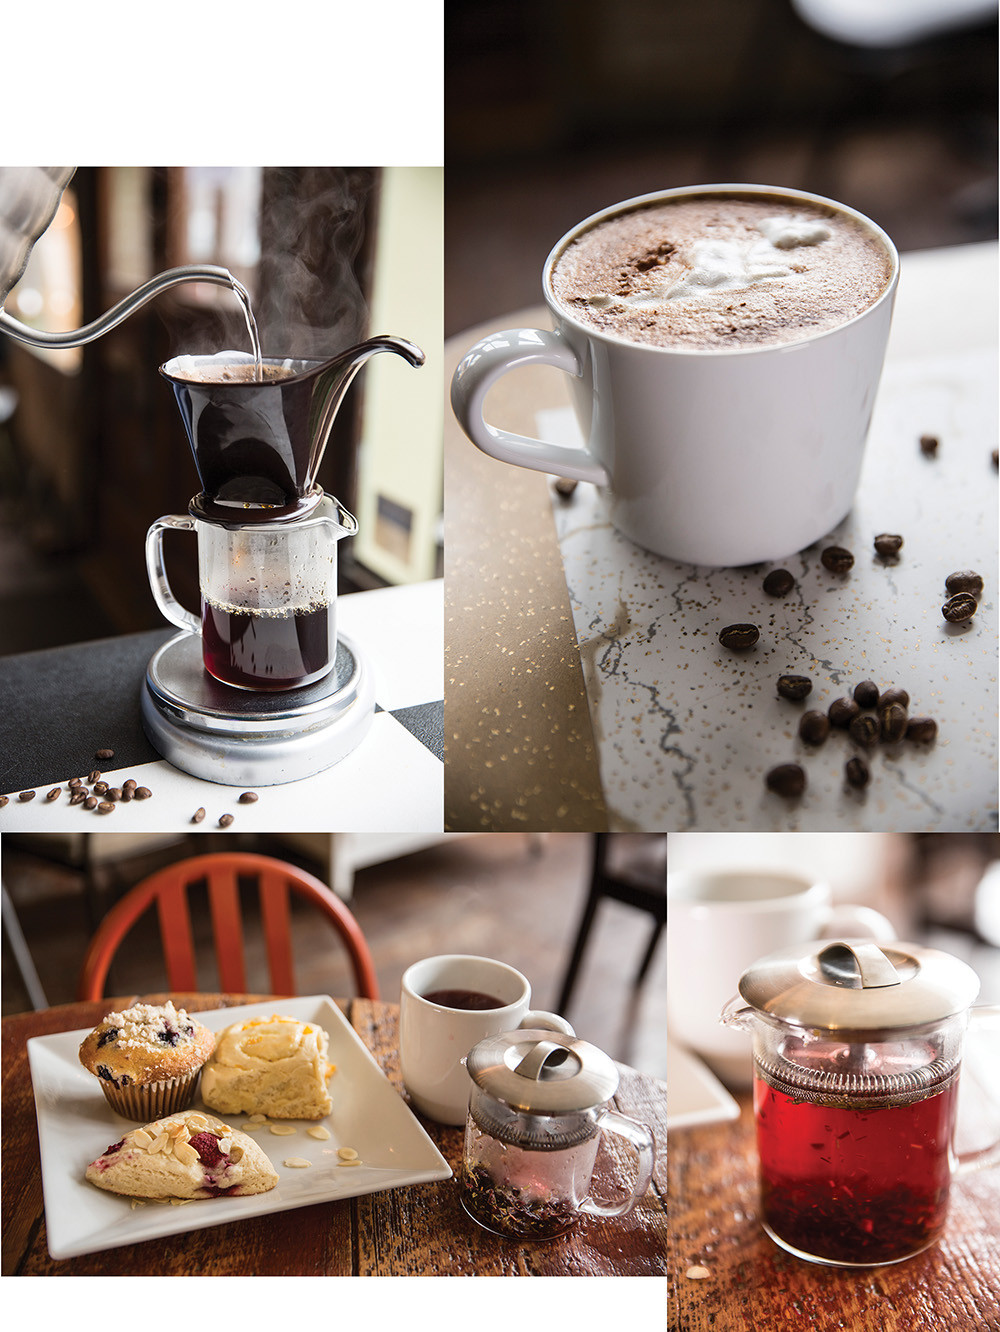 Collage of pictures of jelly filled pastries mugs of cappuccino a pitcher of syrup and hot water being poured over coffee beans